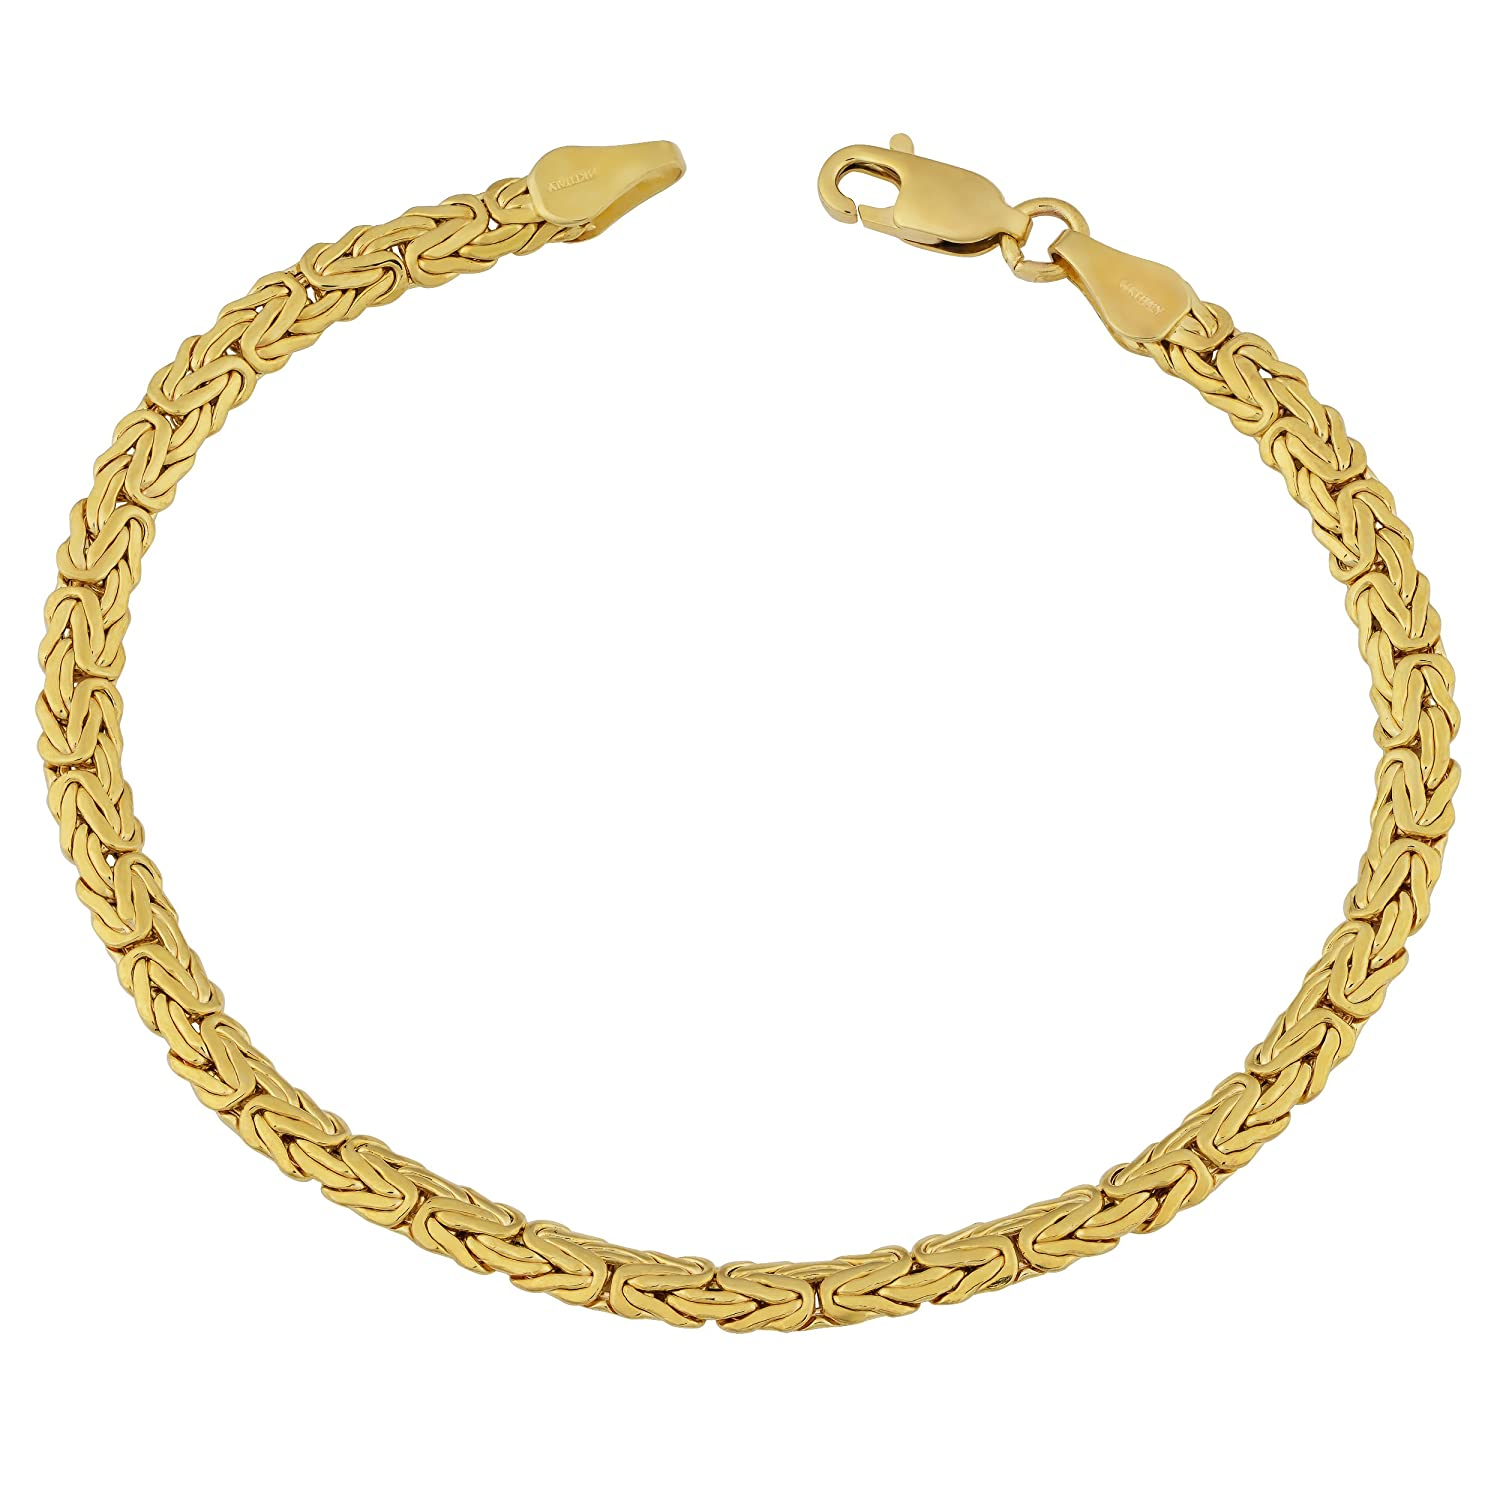 lyst zoe yellow chicco save jewelry anklet star gold bracelet karat metallic view fullscreen in